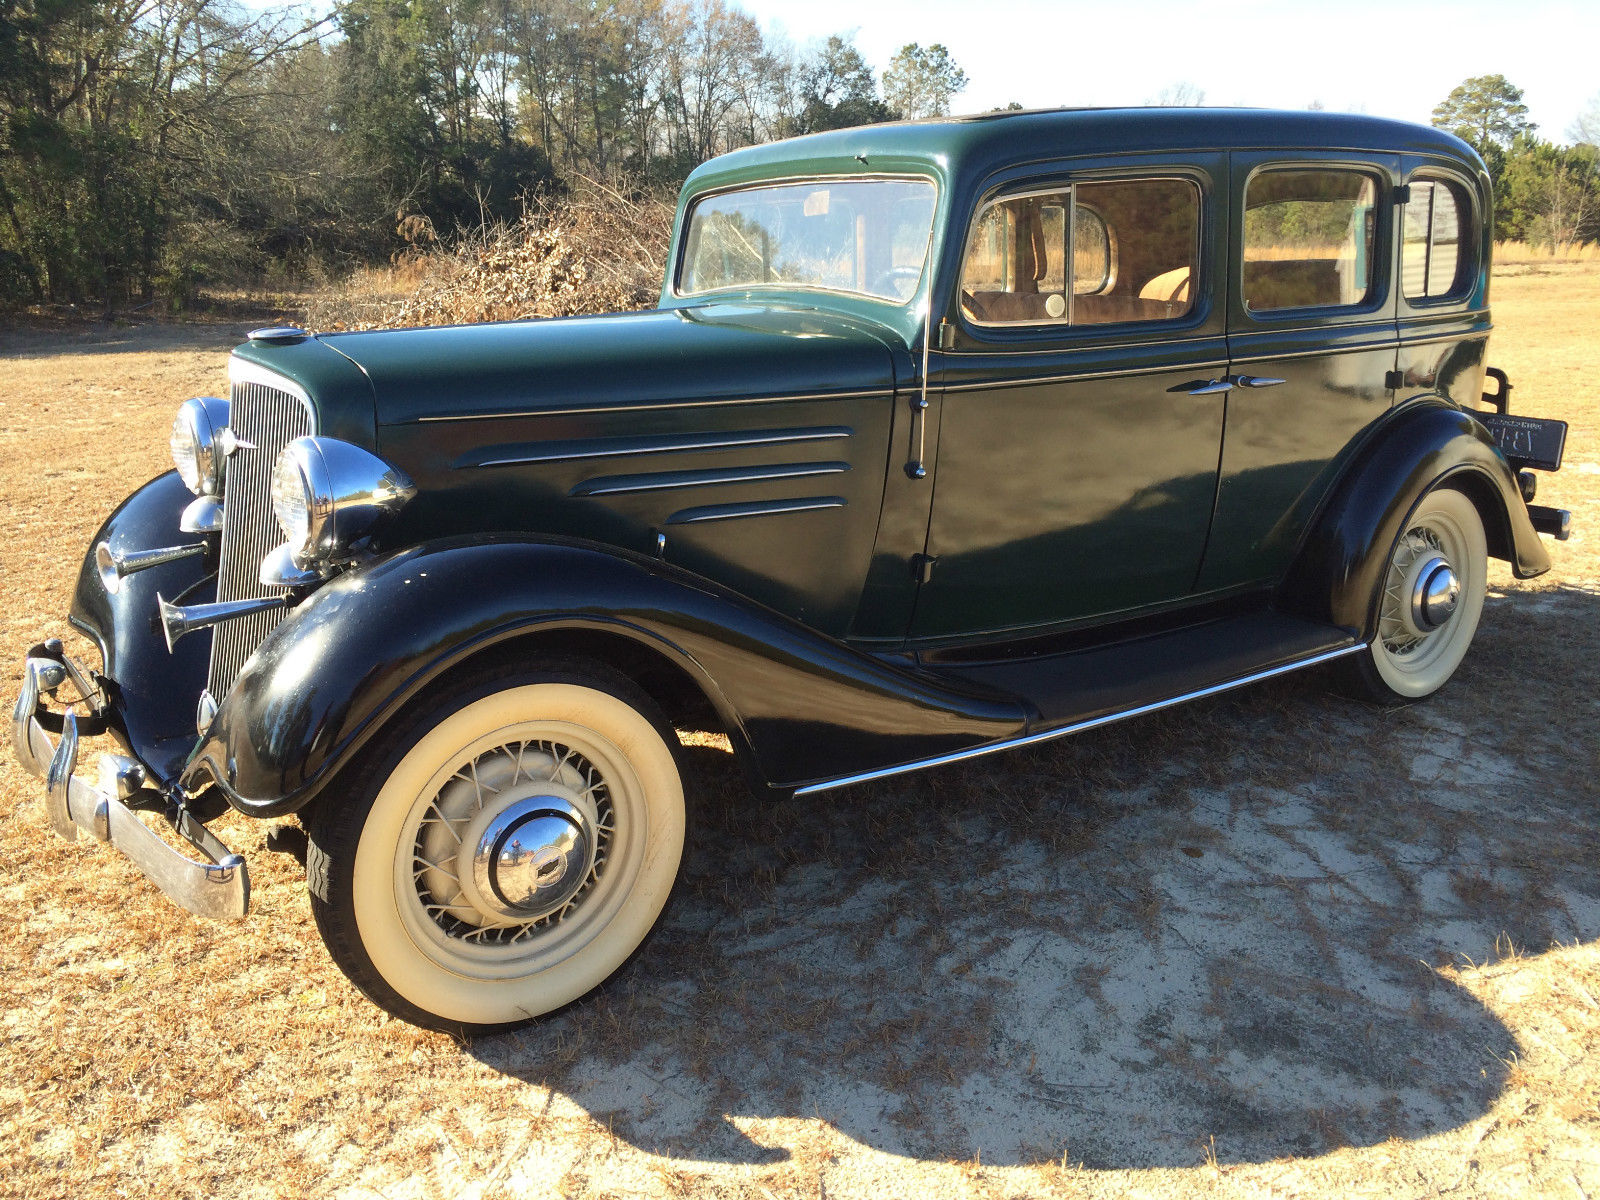 Original 1934 Chevrolet 4 Door Sedan For Sale In Cheraw South Carolina United States For Sale Photos Technical Specifications Description